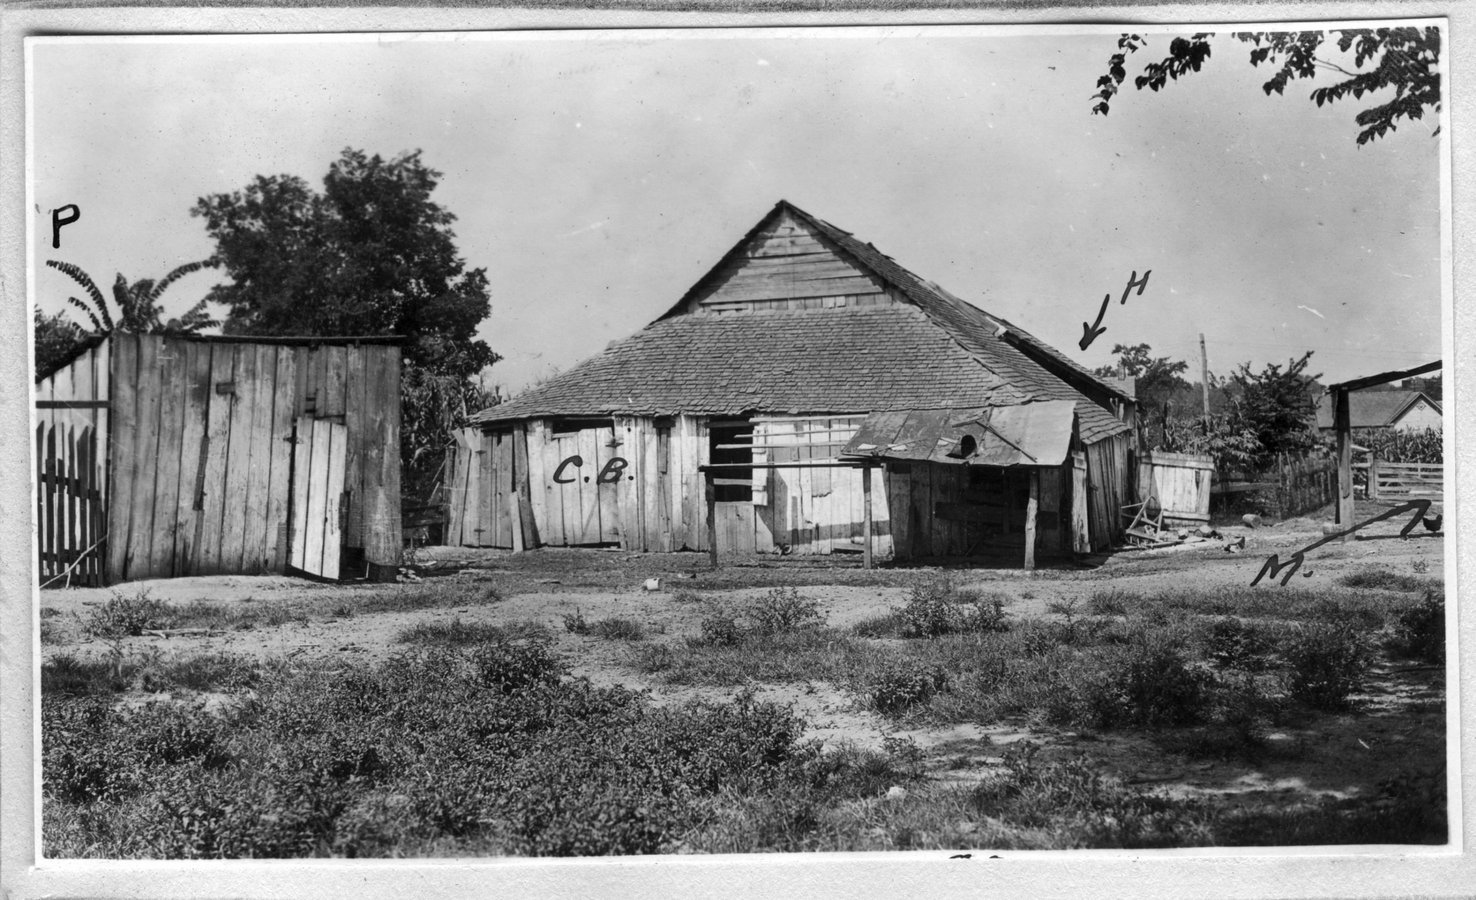 007~O. W. Meador Farm Aug 1920.jpg